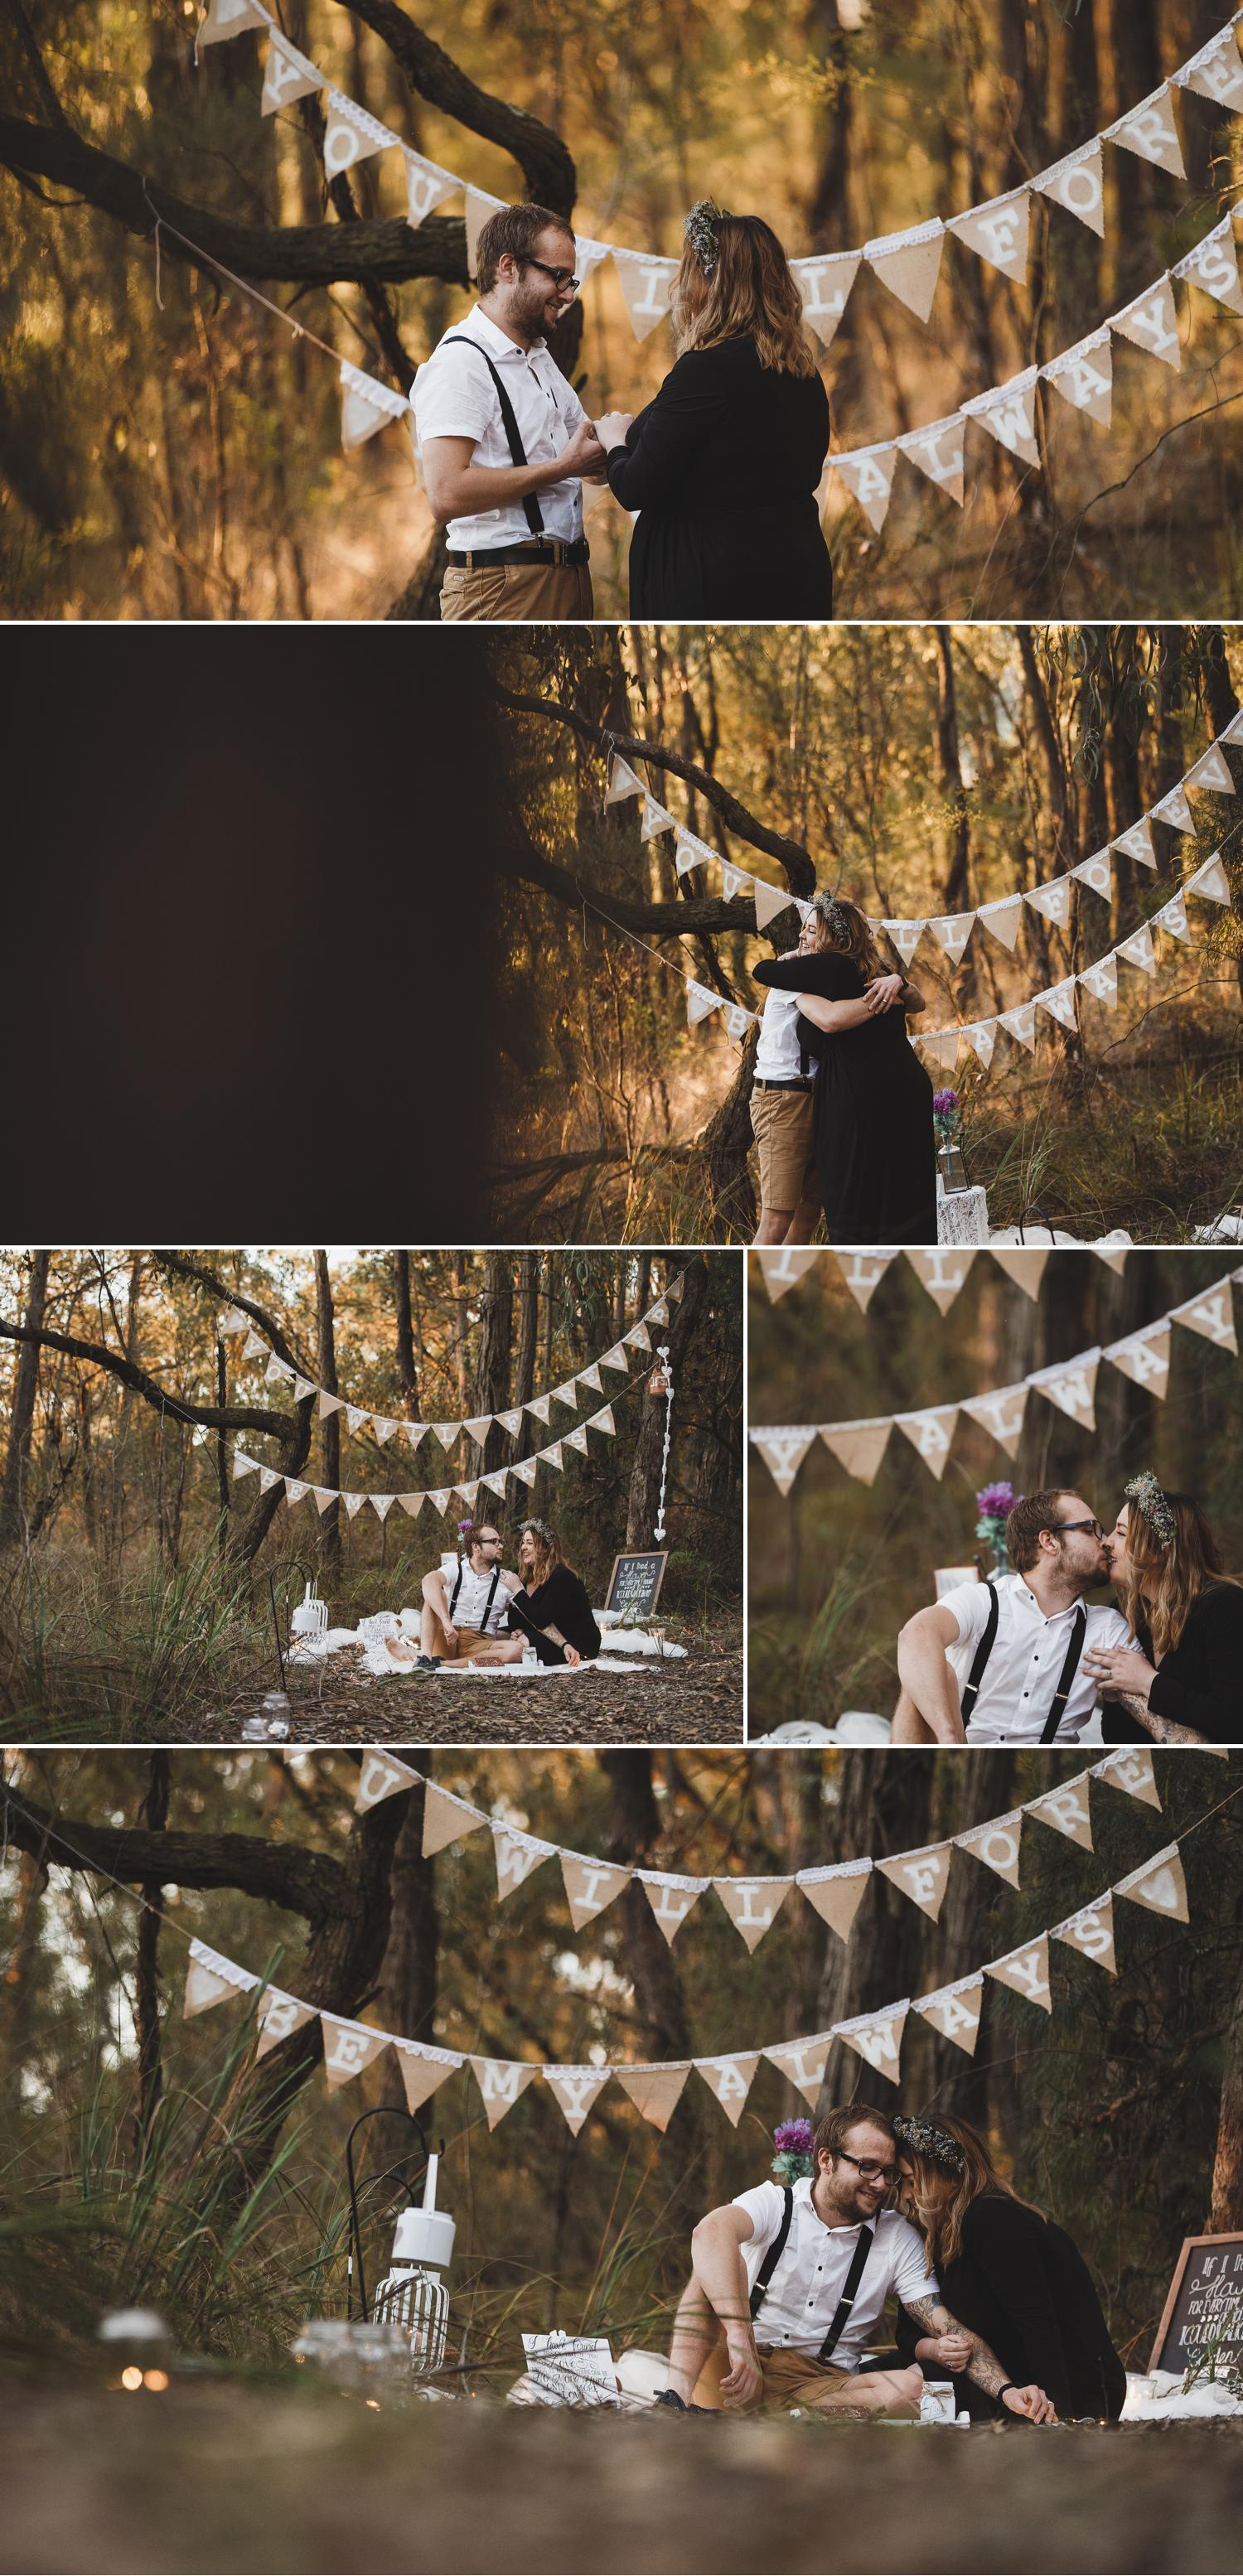 Mt Cannibal Gippsland, Proposal Photo, Forest Photoshoot Engagement, Beautiful Couple Embracing, Flower Crowns Wedding by Danae Studios